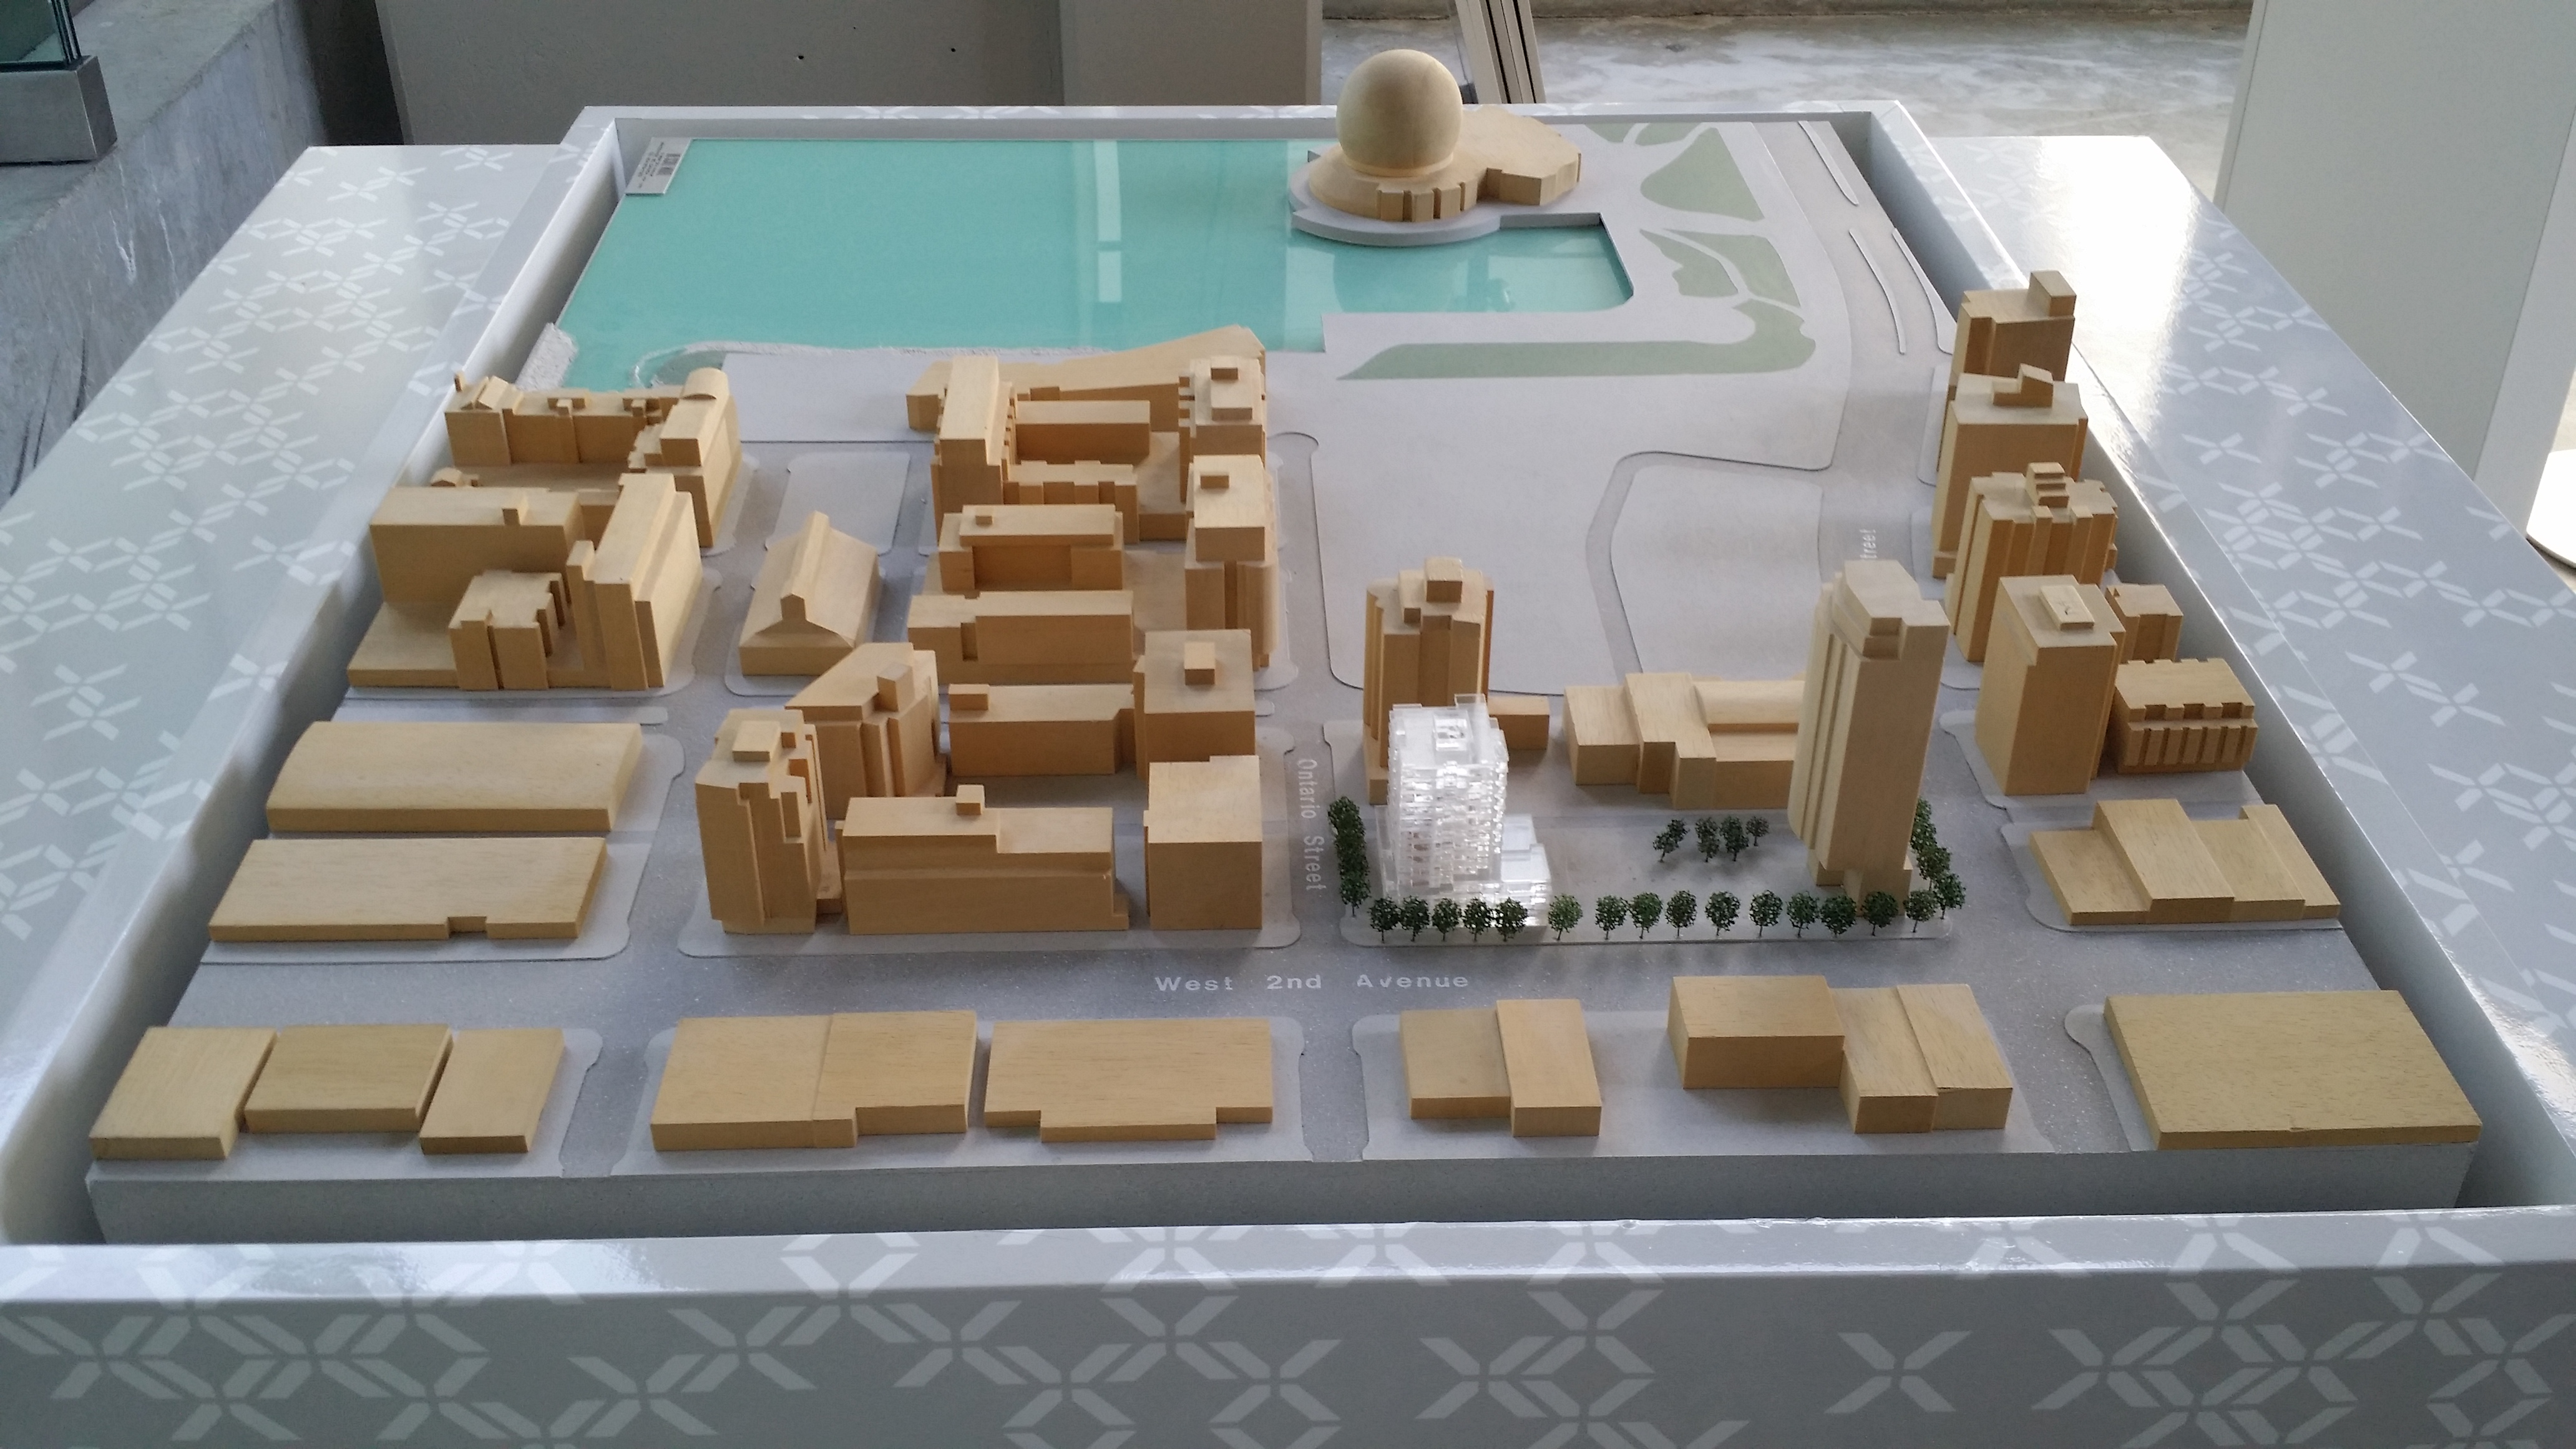 Proximity Vancouver Condo Model with Map (8)